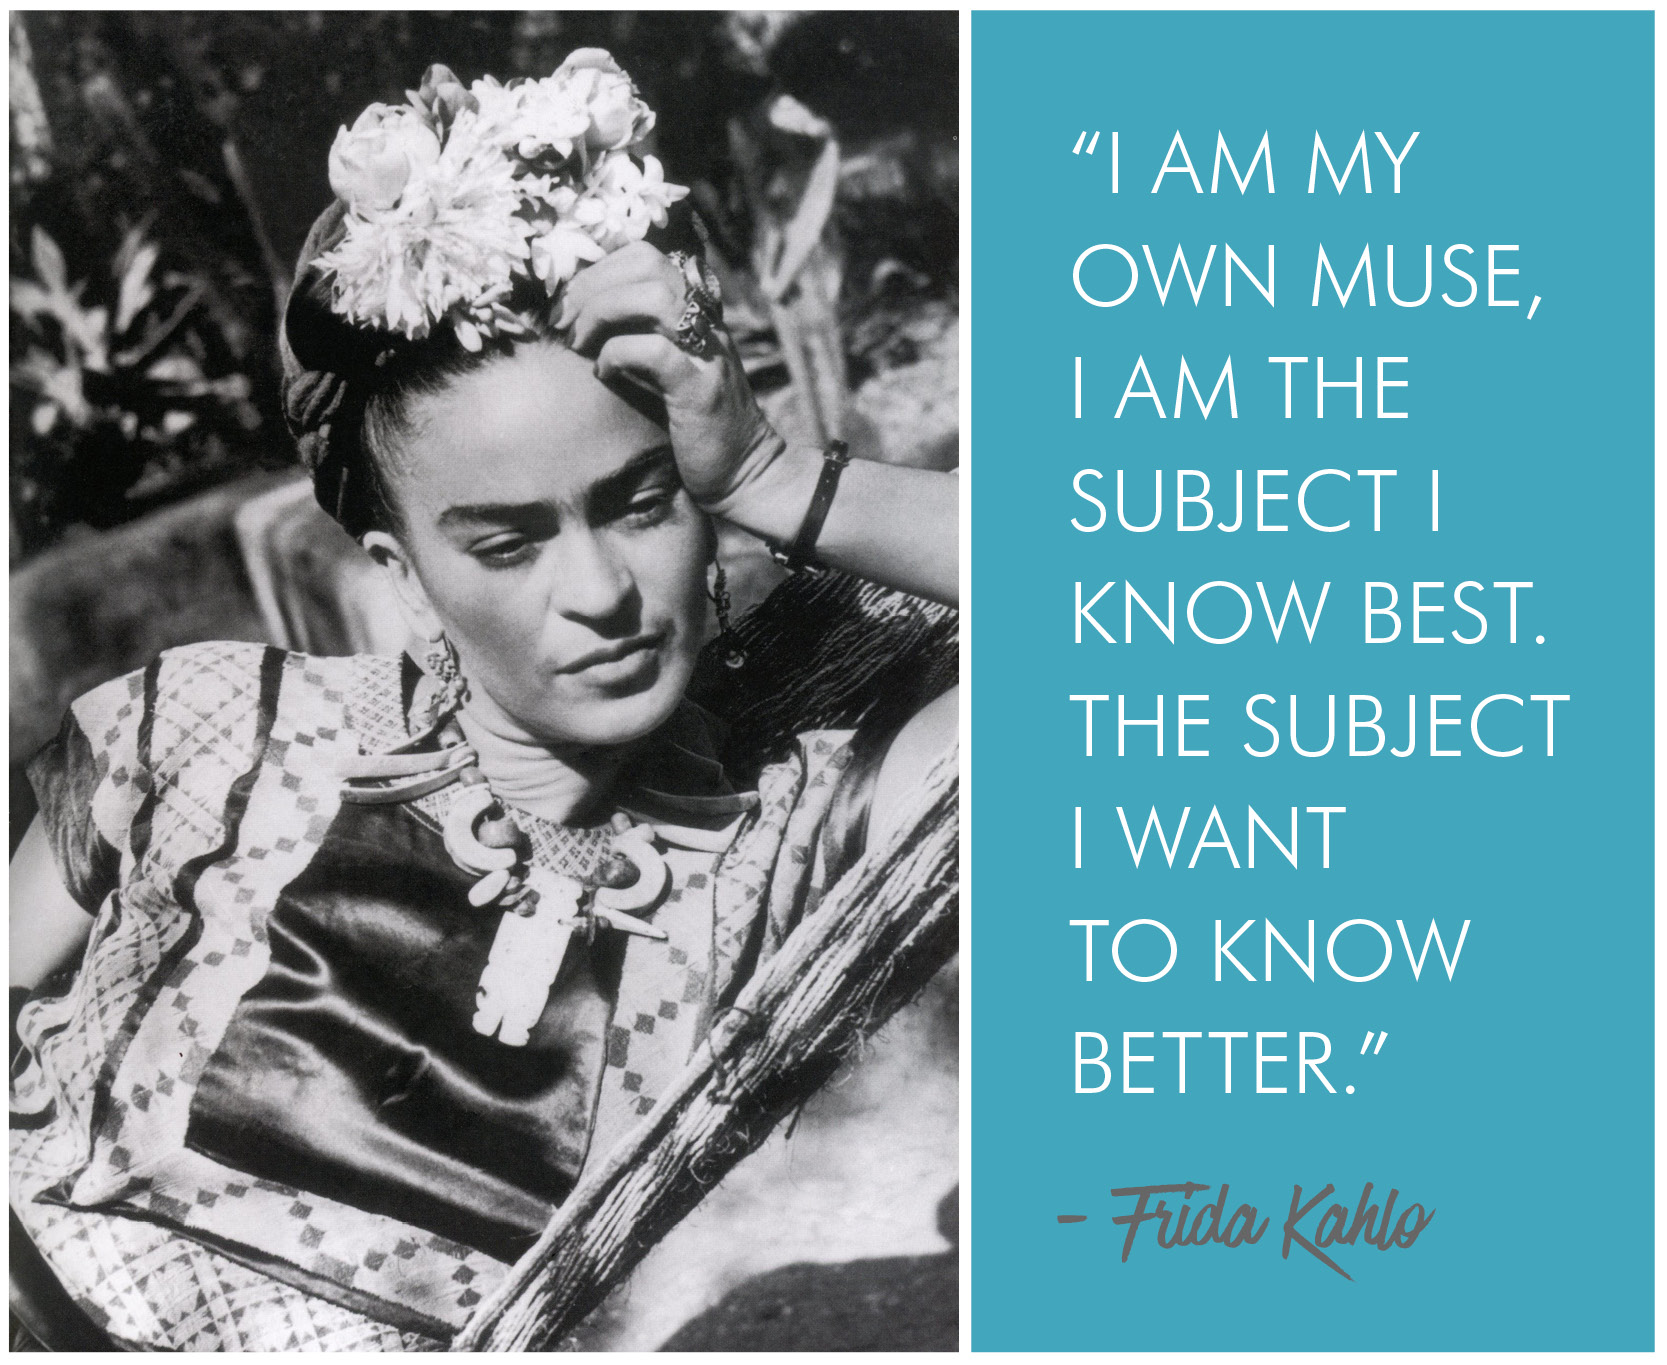 'I am my own muse. I am the subject I know best. The subject I want to know better.' - Frida Kahlo